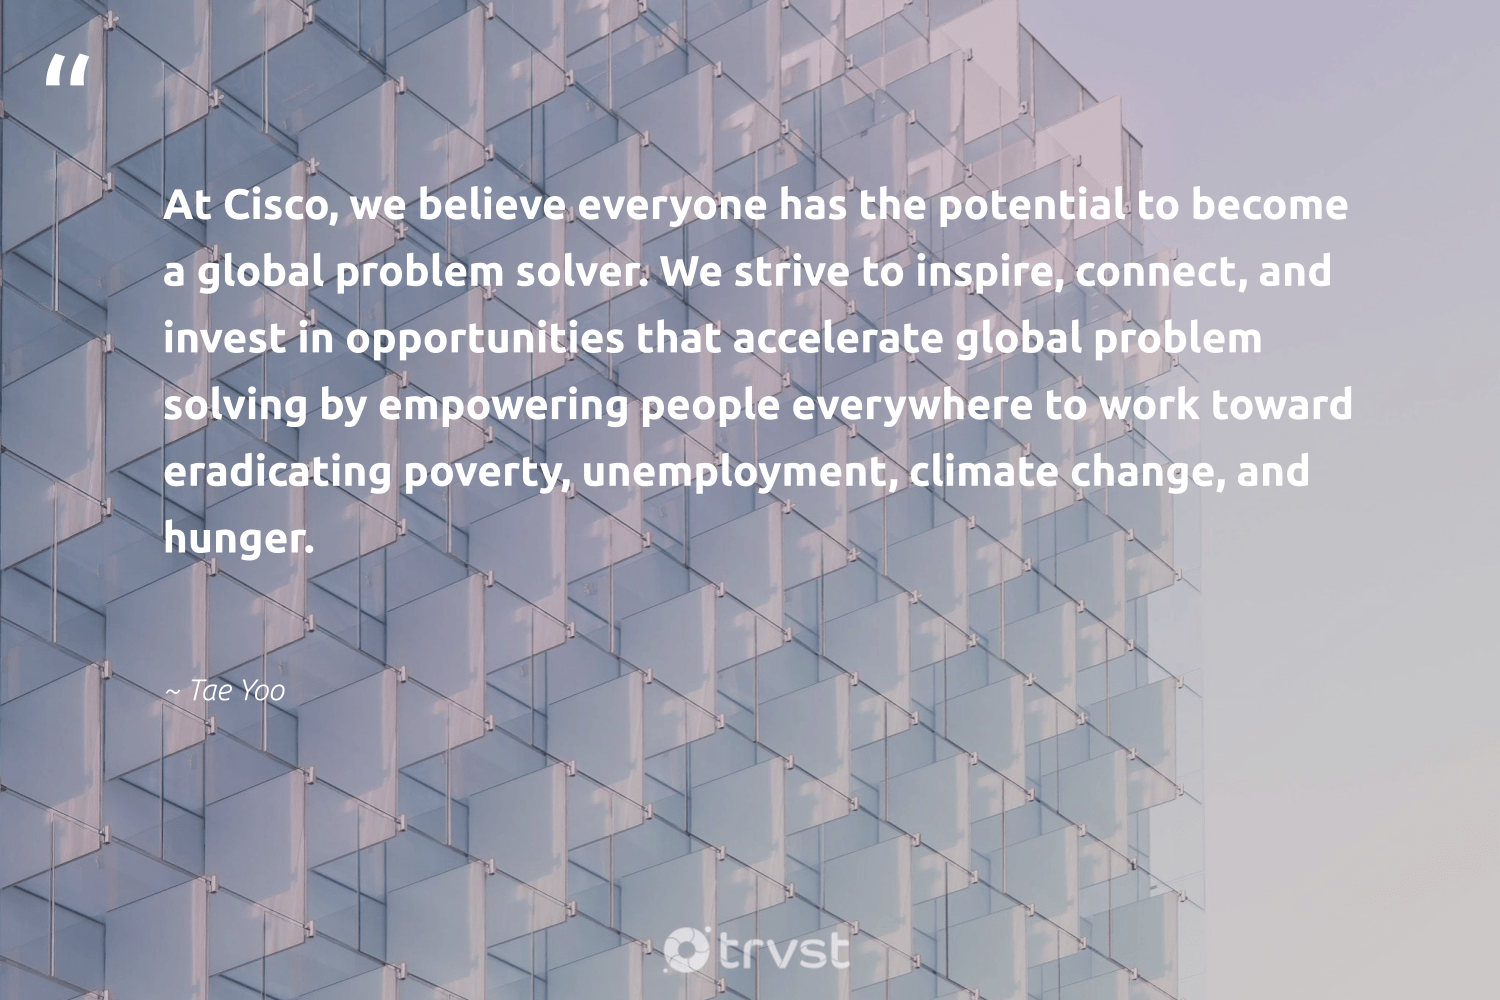 """""""At Cisco, we believe everyone has the potential to become a global problem solver. We strive to inspire, connect, and invest in opportunities that accelerate global problem solving by empowering people everywhere to work toward eradicating poverty, unemployment, climate change, and hunger.""""  - Tae Yoo #trvst #quotes #climatechange #climate #poverty #hunger #climatechangeisreal #cop21 #dogood #climateaction #bethechange #co2"""